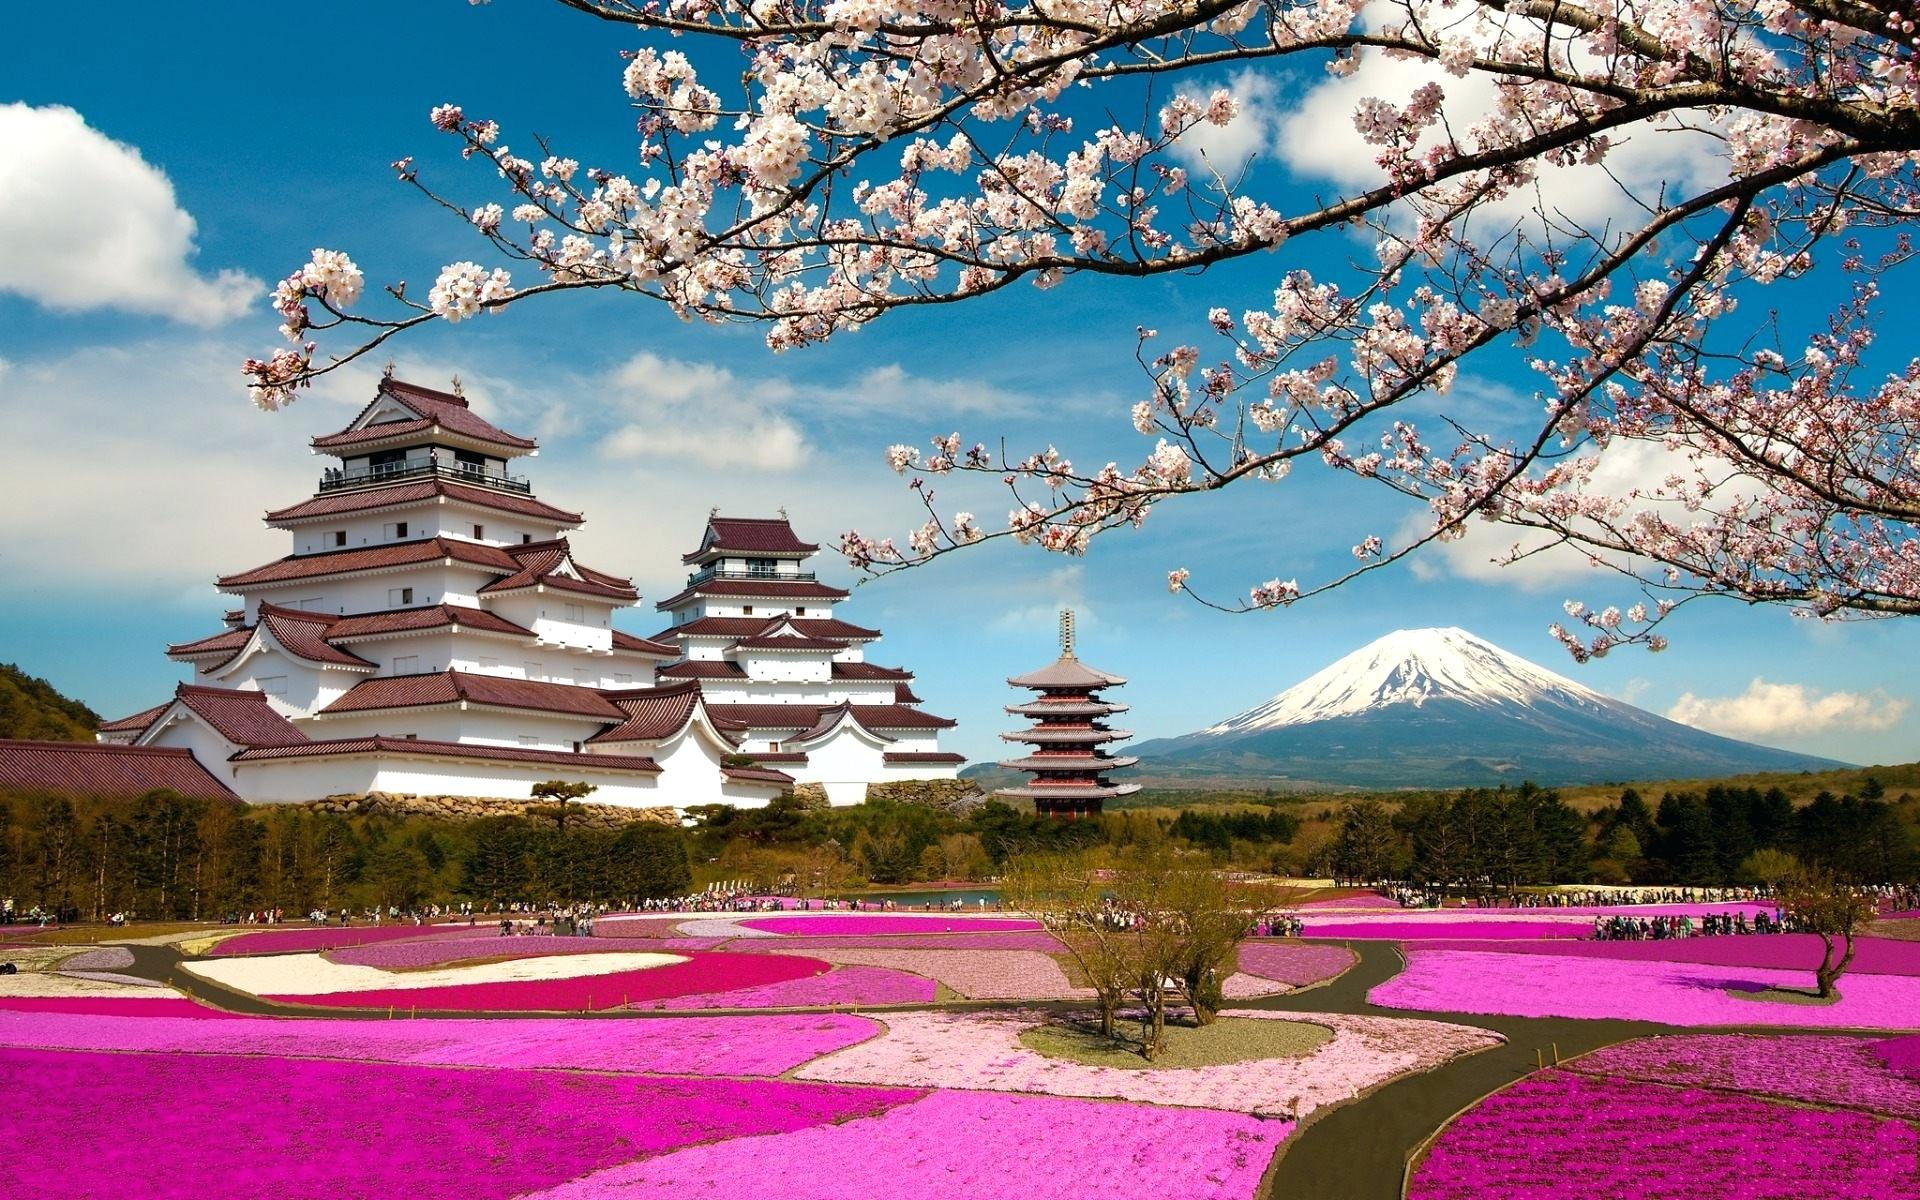 Japan Landscape Wallpapers Top Free Japan Landscape Backgrounds Wallpaperaccess